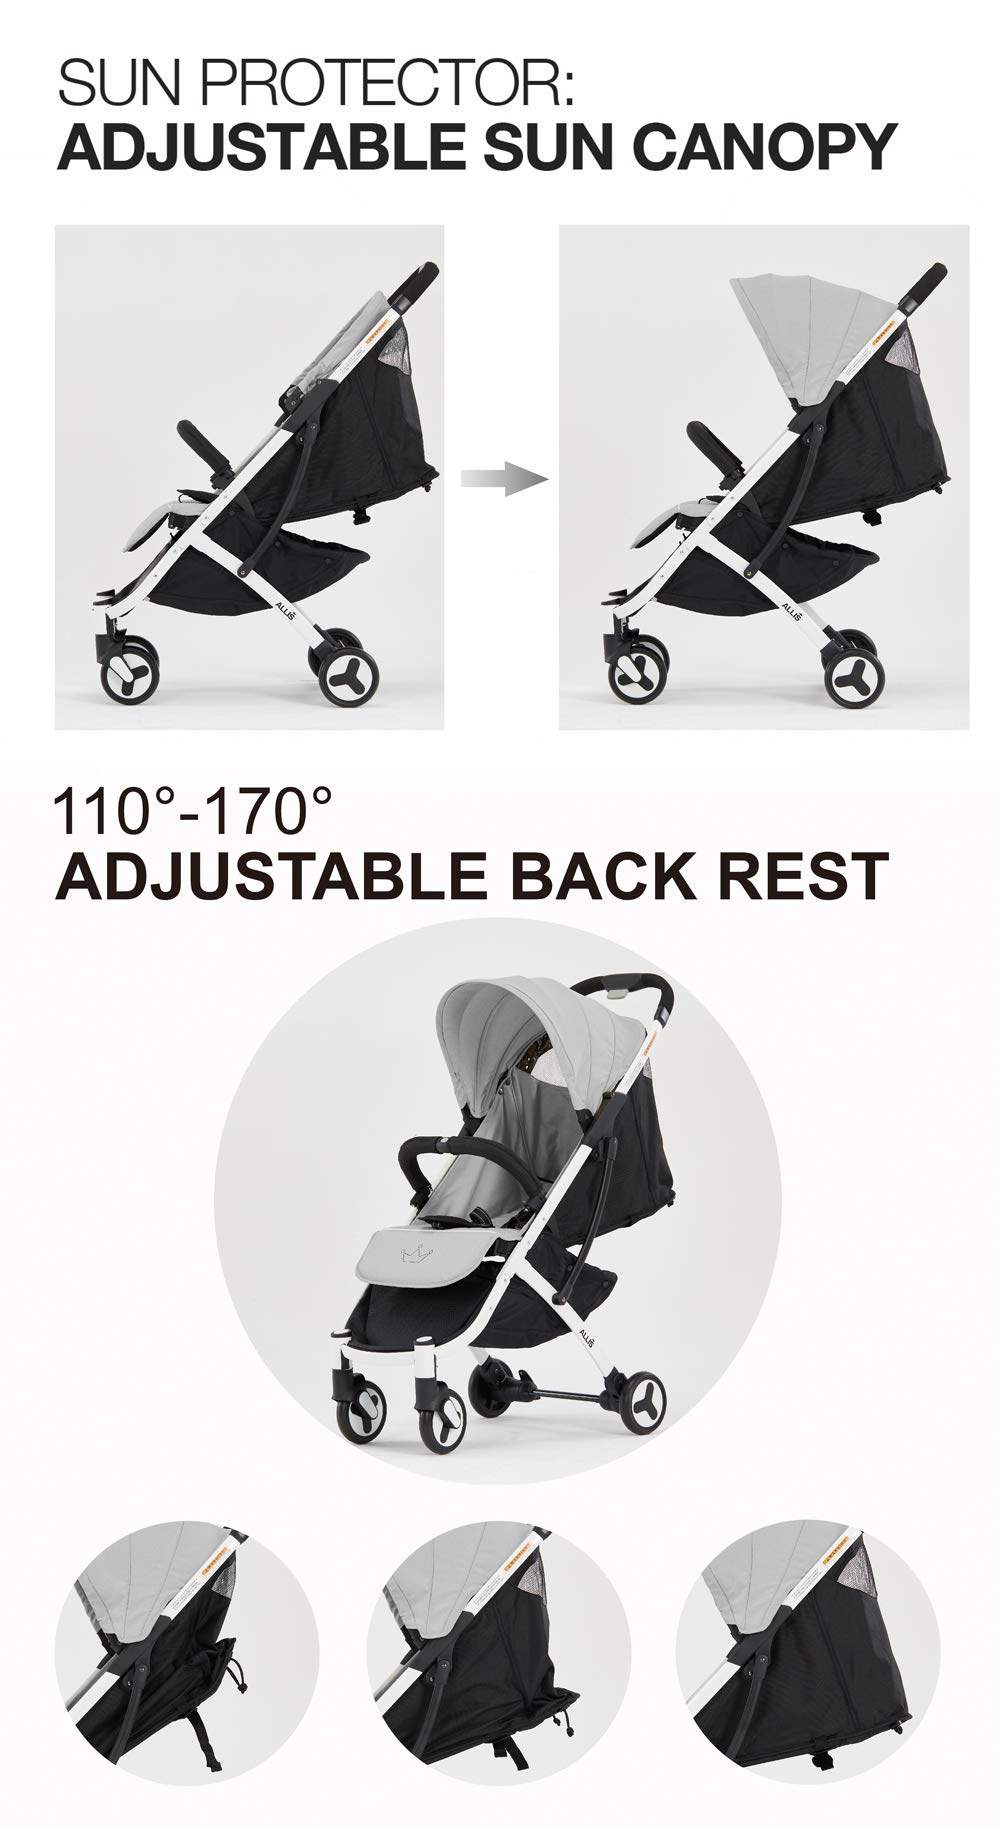 Allis Lightweight Stroller Baby Pushchair Buggy Travel Pram Plume - Grey Allis Baby Made according to British Standard EN1888 and Fire Safety Regulations 1988. Lockable 360 swivel wheels, removable and suspension, Peek A Boo window/ Recline Seat/ Lie-flat position From 6M (Upto 15Kg Approx). Lightweight 6.7Kg only, Easy to fold with one hand only 8